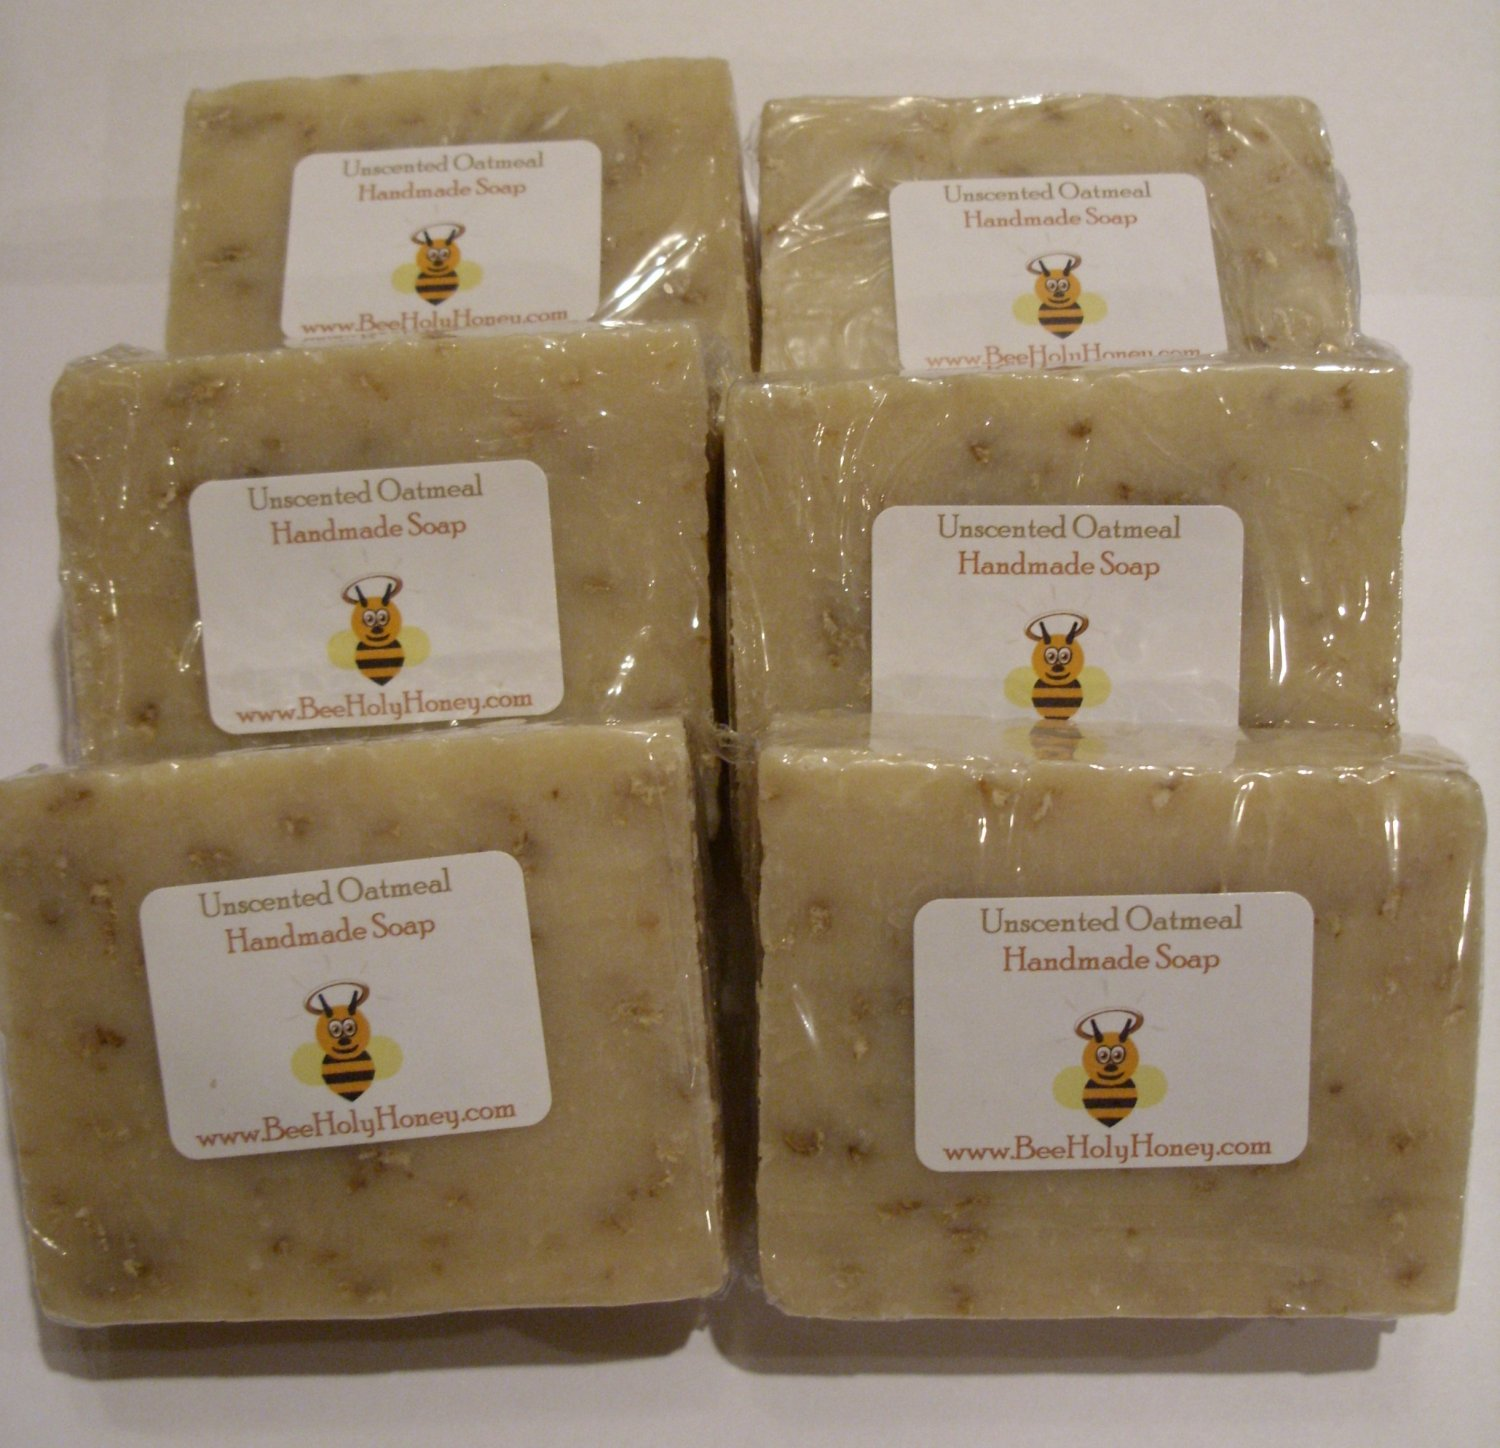 SAVE 10% - 6pk Unscented Oatmeal Soap. Item # SUO-6